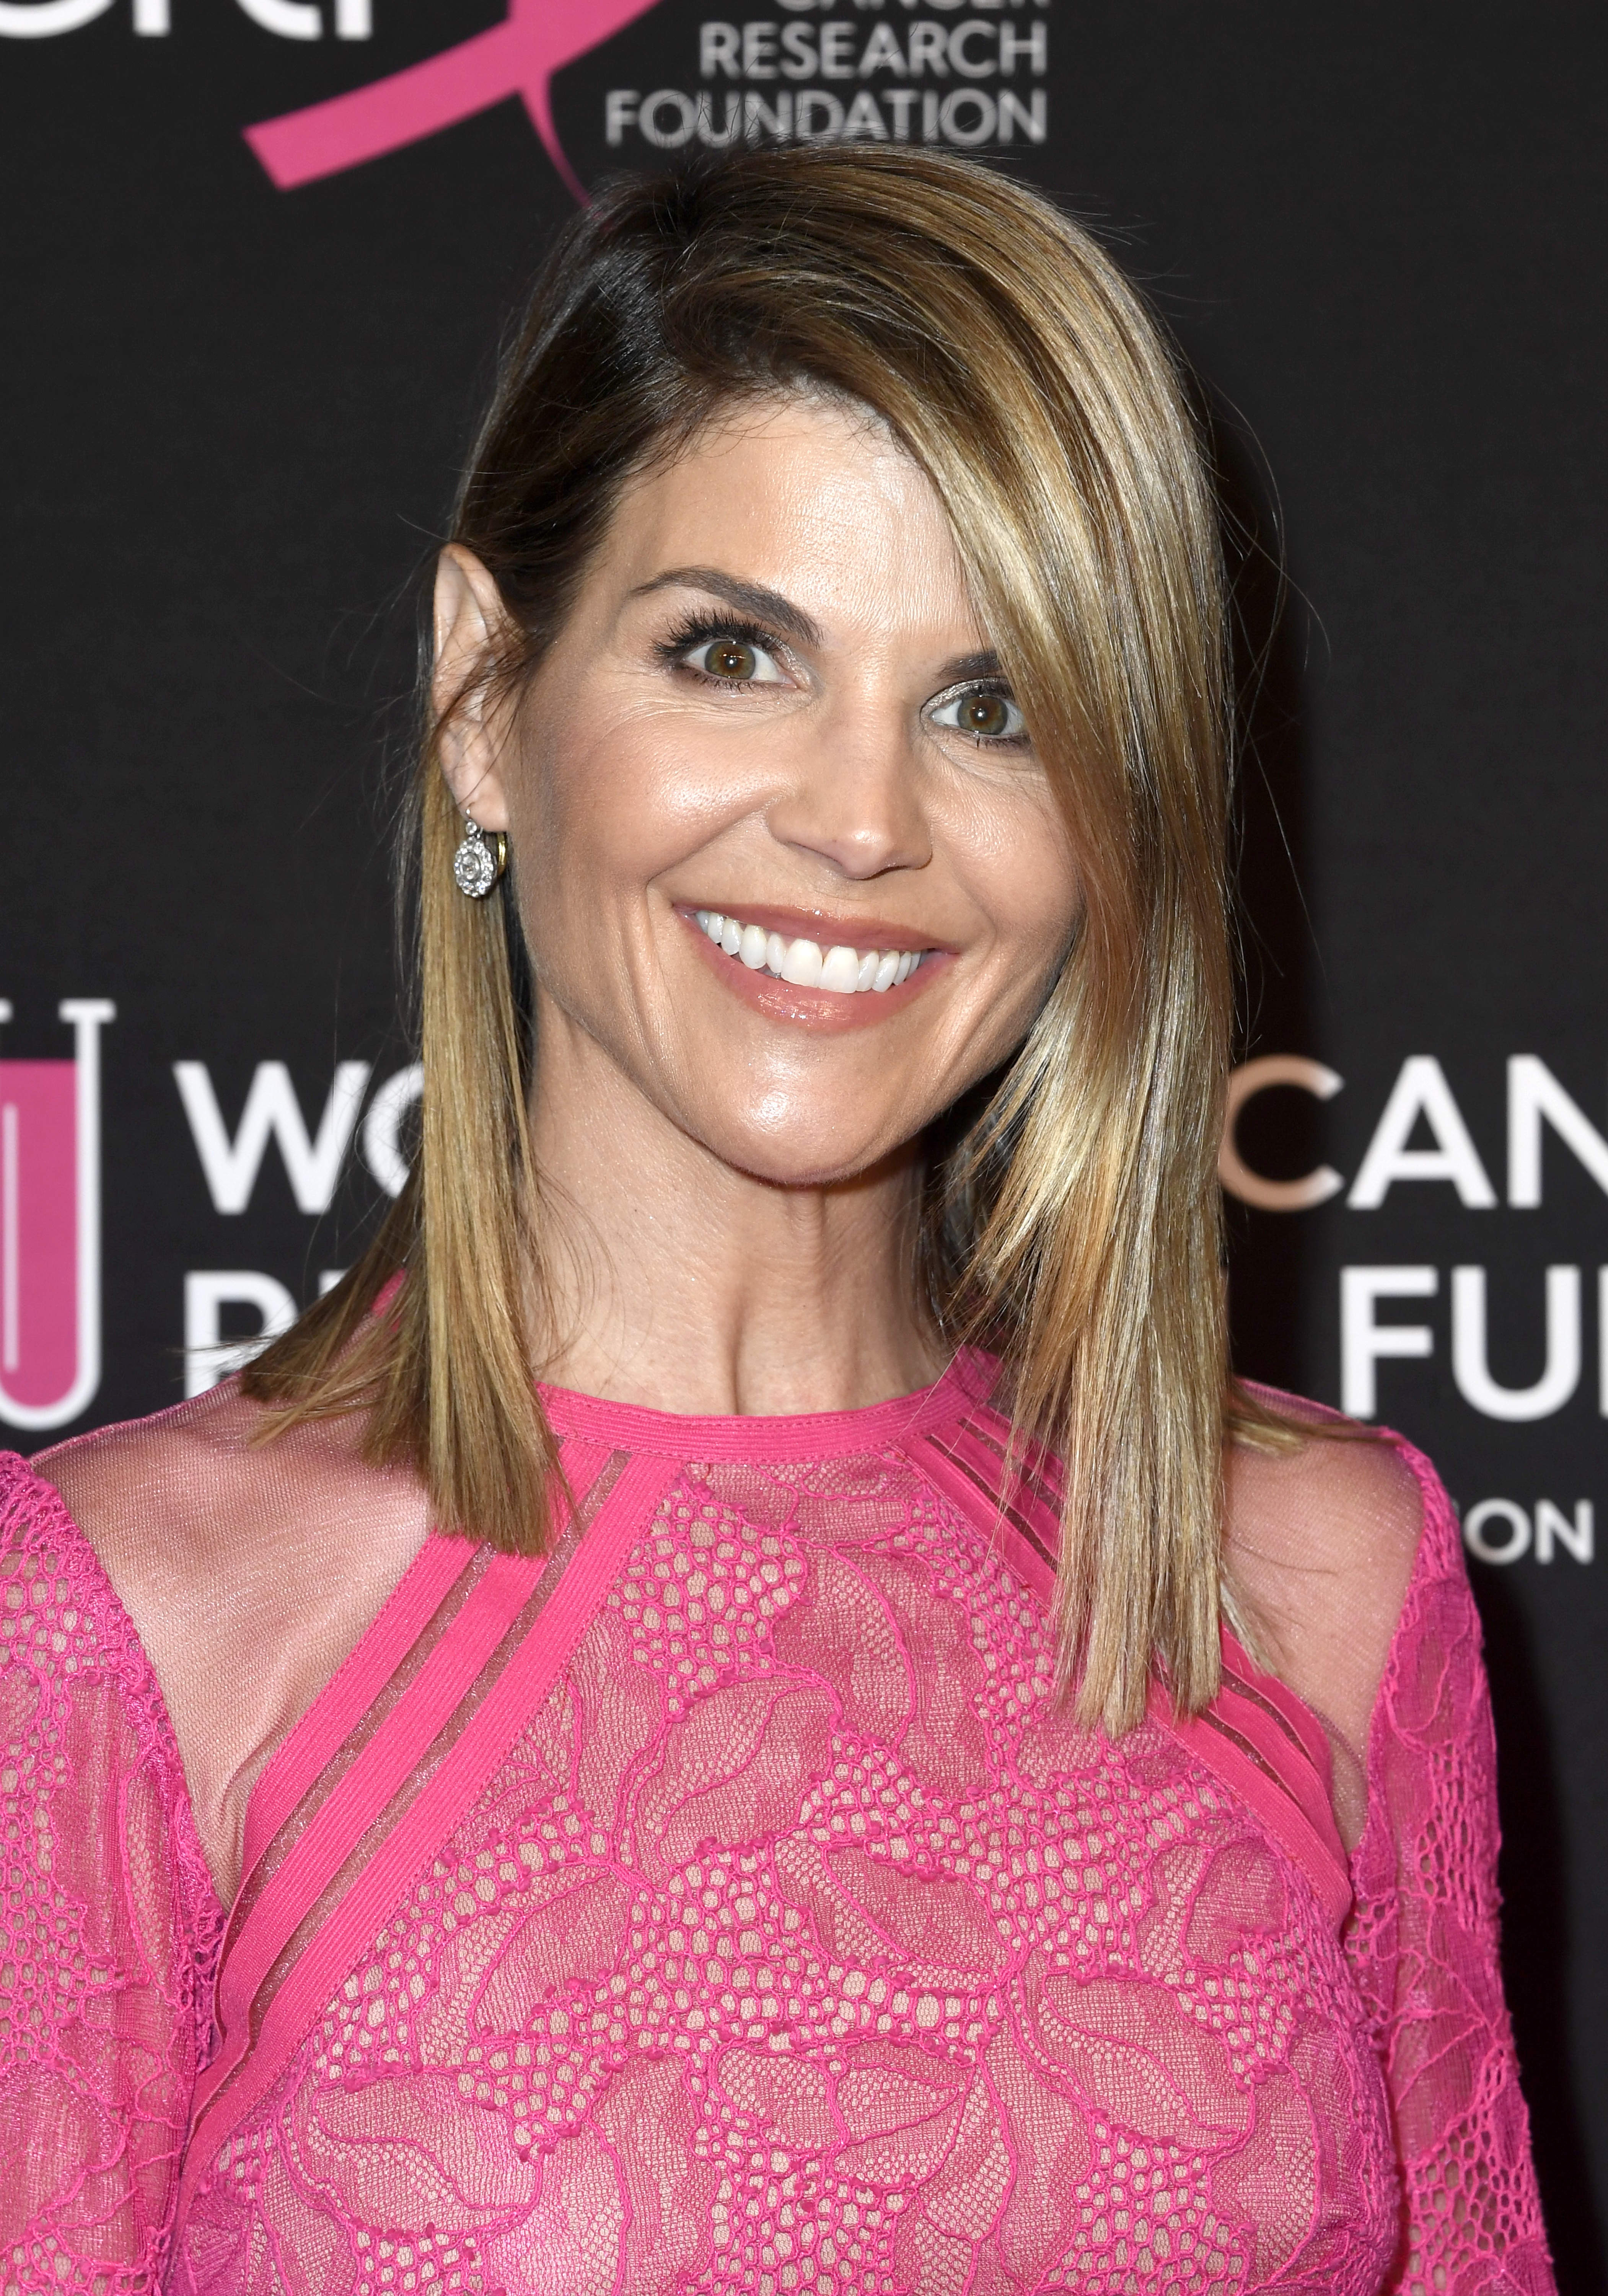 Lori Loughlin attends The Women's Cancer Research Fund's An Unforgettable Evening Benefit Gala at the Beverly Wilshire Four Seasons Hotel on February 28, 2019 in Beverly Hills, California. (Getty)